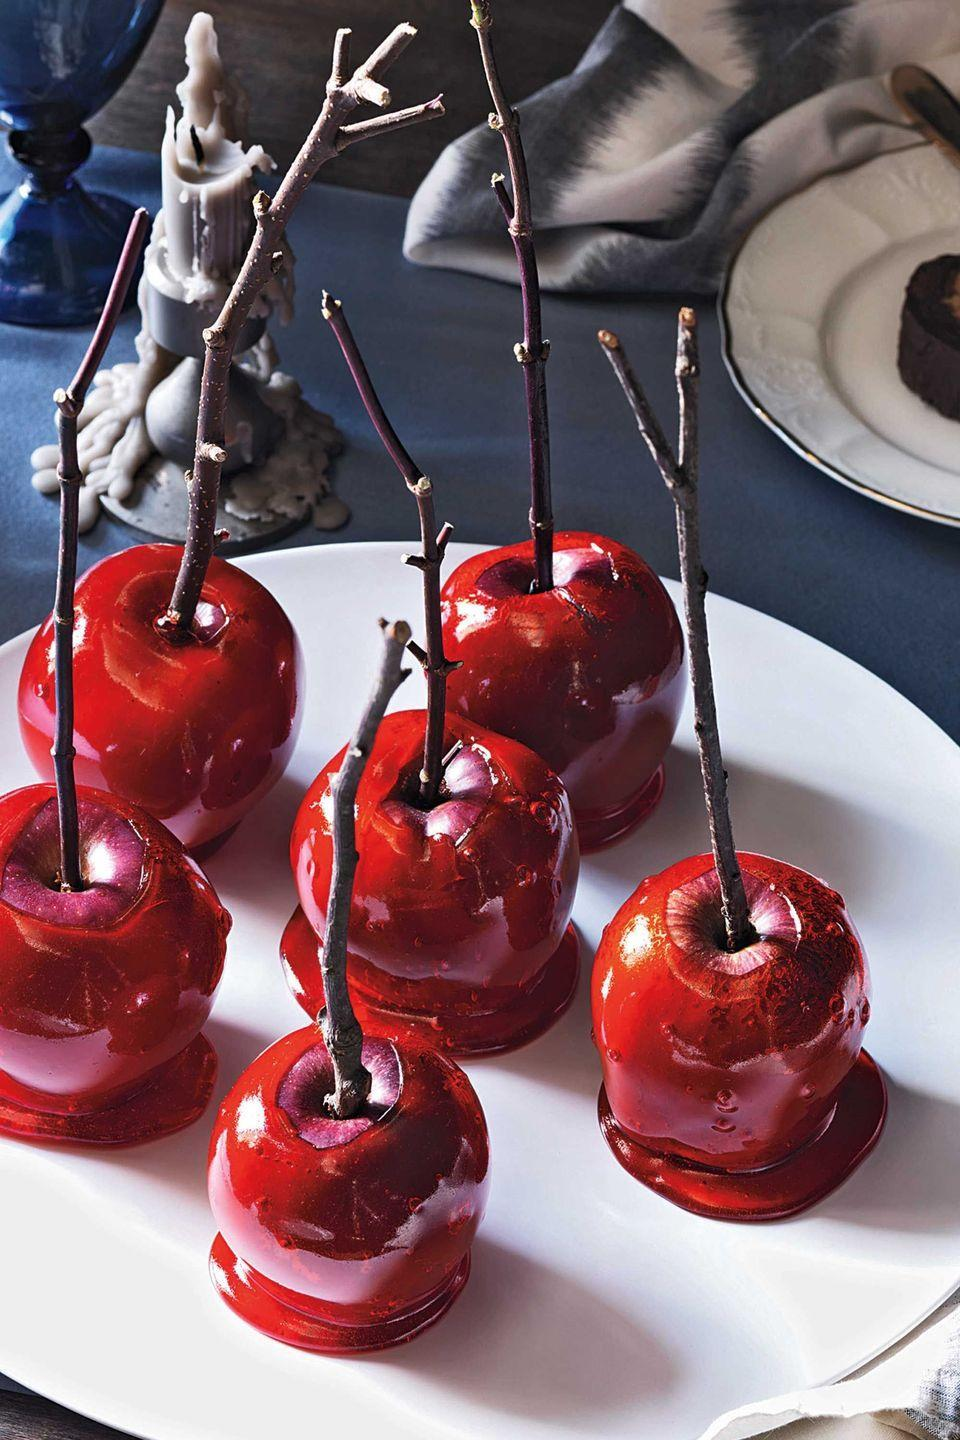 """<p>Create a bewitching version of this beloved candy-coated treat by dipping small Red Delicious apples in a bright red syrup flavored with red cinnamon candies.</p><p><a href=""""https://www.womansday.com/food-recipes/food-drinks/recipes/a11353/candy-apples-recipe-122751/"""" rel=""""nofollow noopener"""" target=""""_blank"""" data-ylk=""""slk:Get the Candy-Covered Apples recipe."""" class=""""link rapid-noclick-resp""""><strong><em>Get the Candy-Covered Apples recipe. </em></strong> </a></p><p><strong>What You'll Need: </strong><a href=""""https://www.amazon.com/Stick-Branch-Wedding-Pieces-3-94-Inch/dp/B013DJZQ9E?tag=syn-yahoo-20&ascsubtag=%5Bartid%7C10070.g.1289%5Bsrc%7Cyahoo-us"""" rel=""""nofollow noopener"""" target=""""_blank"""" data-ylk=""""slk:Craft twigs"""" class=""""link rapid-noclick-resp"""">Craft twigs</a> ($10 for 100; Amazon)</p>"""